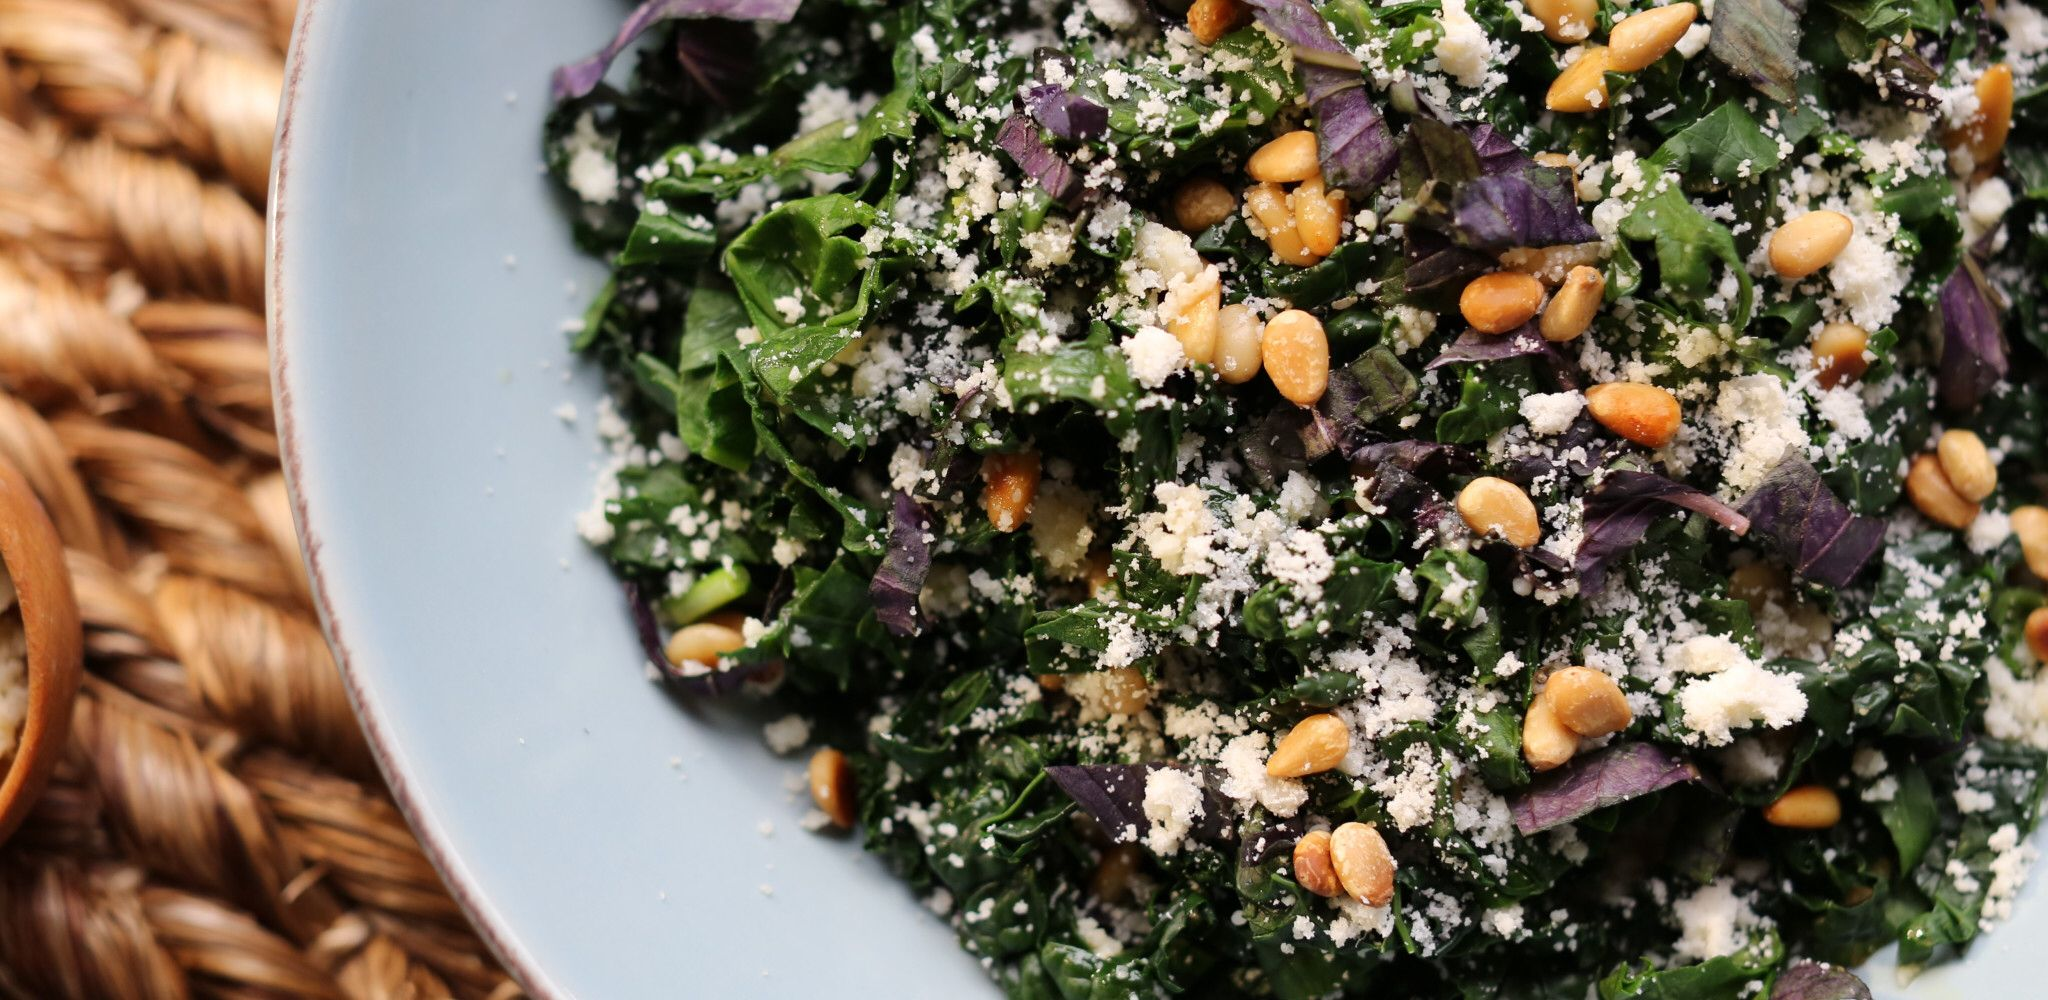 Purple And Green Kale Salad With Lemon Anchovy Vinaigrette Recipe Food Network Recipes Kale Salad Green Kale